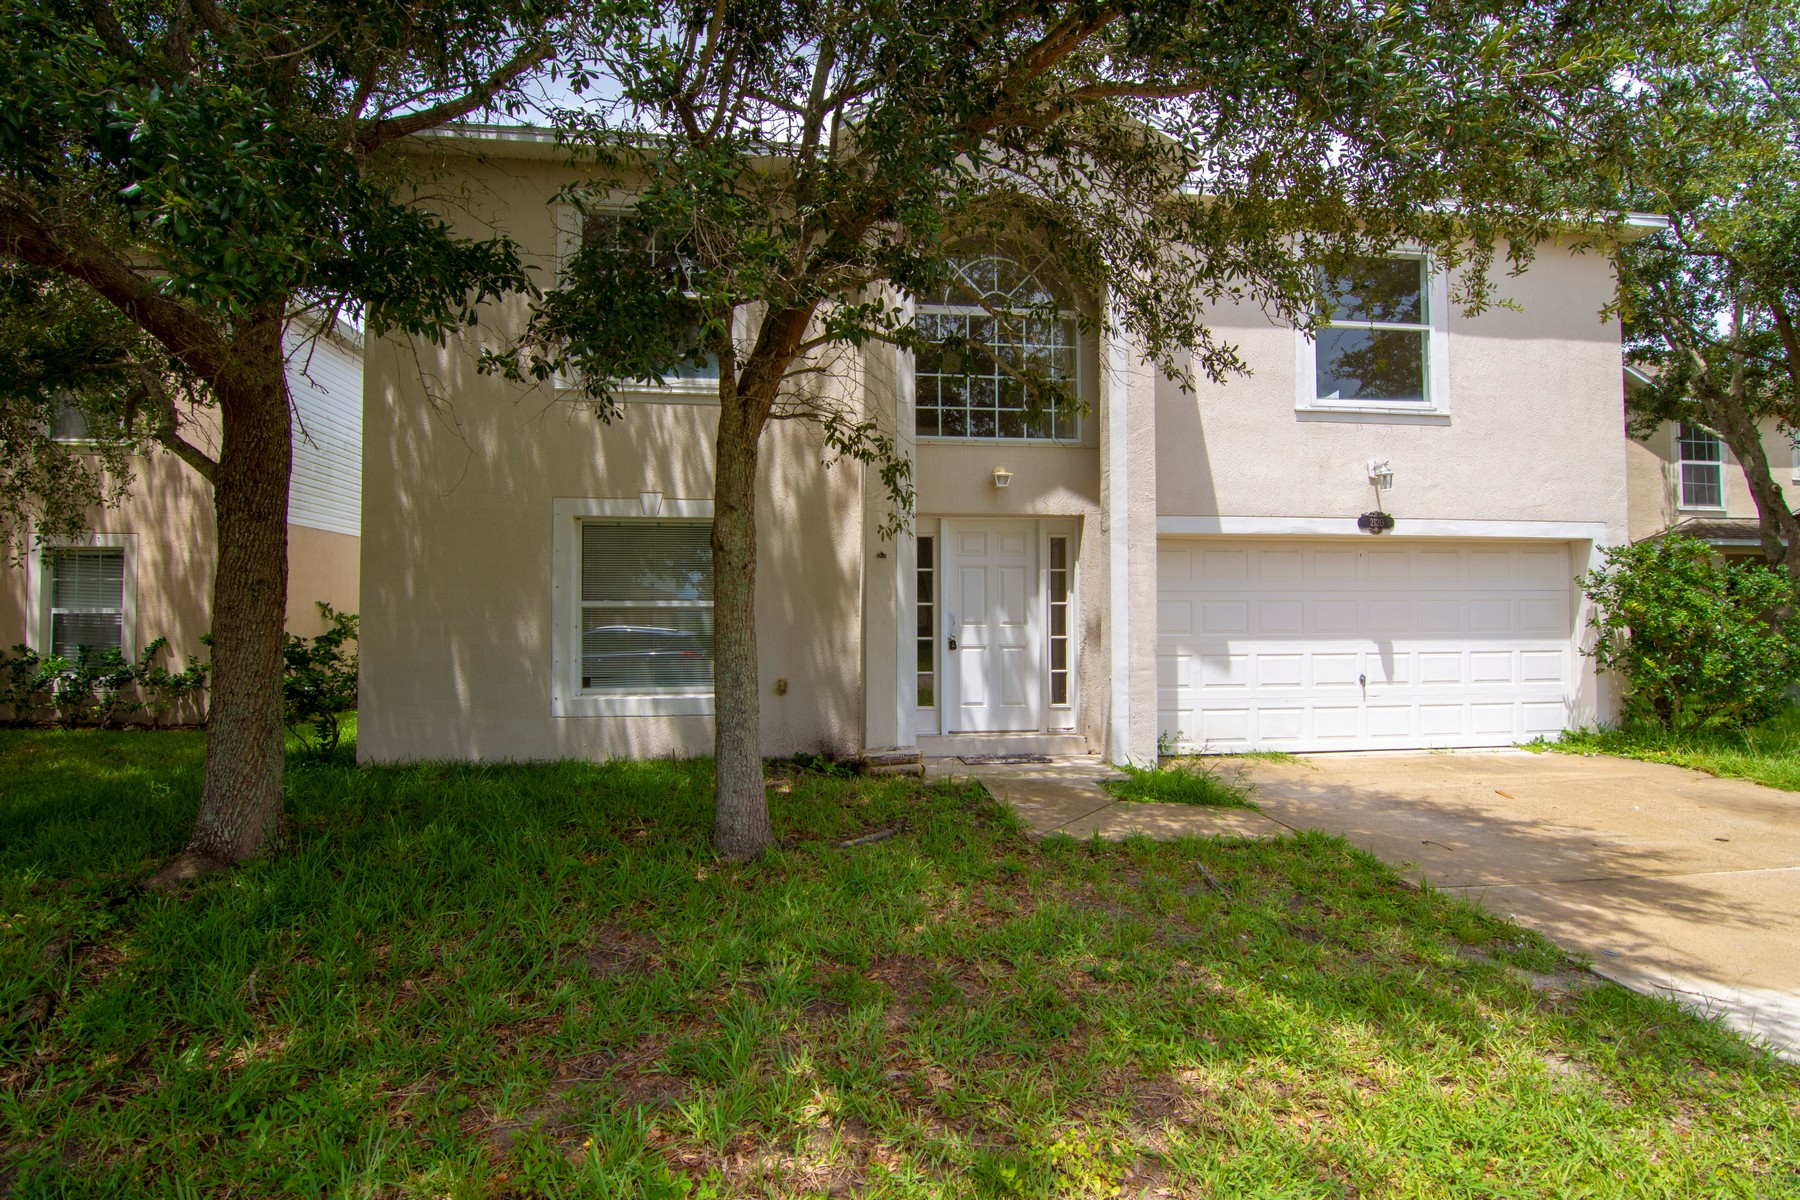 Property for Sale at Well Maintained Lakefront Home 2120 Canopy Drive Melbourne, Florida 32935 United States